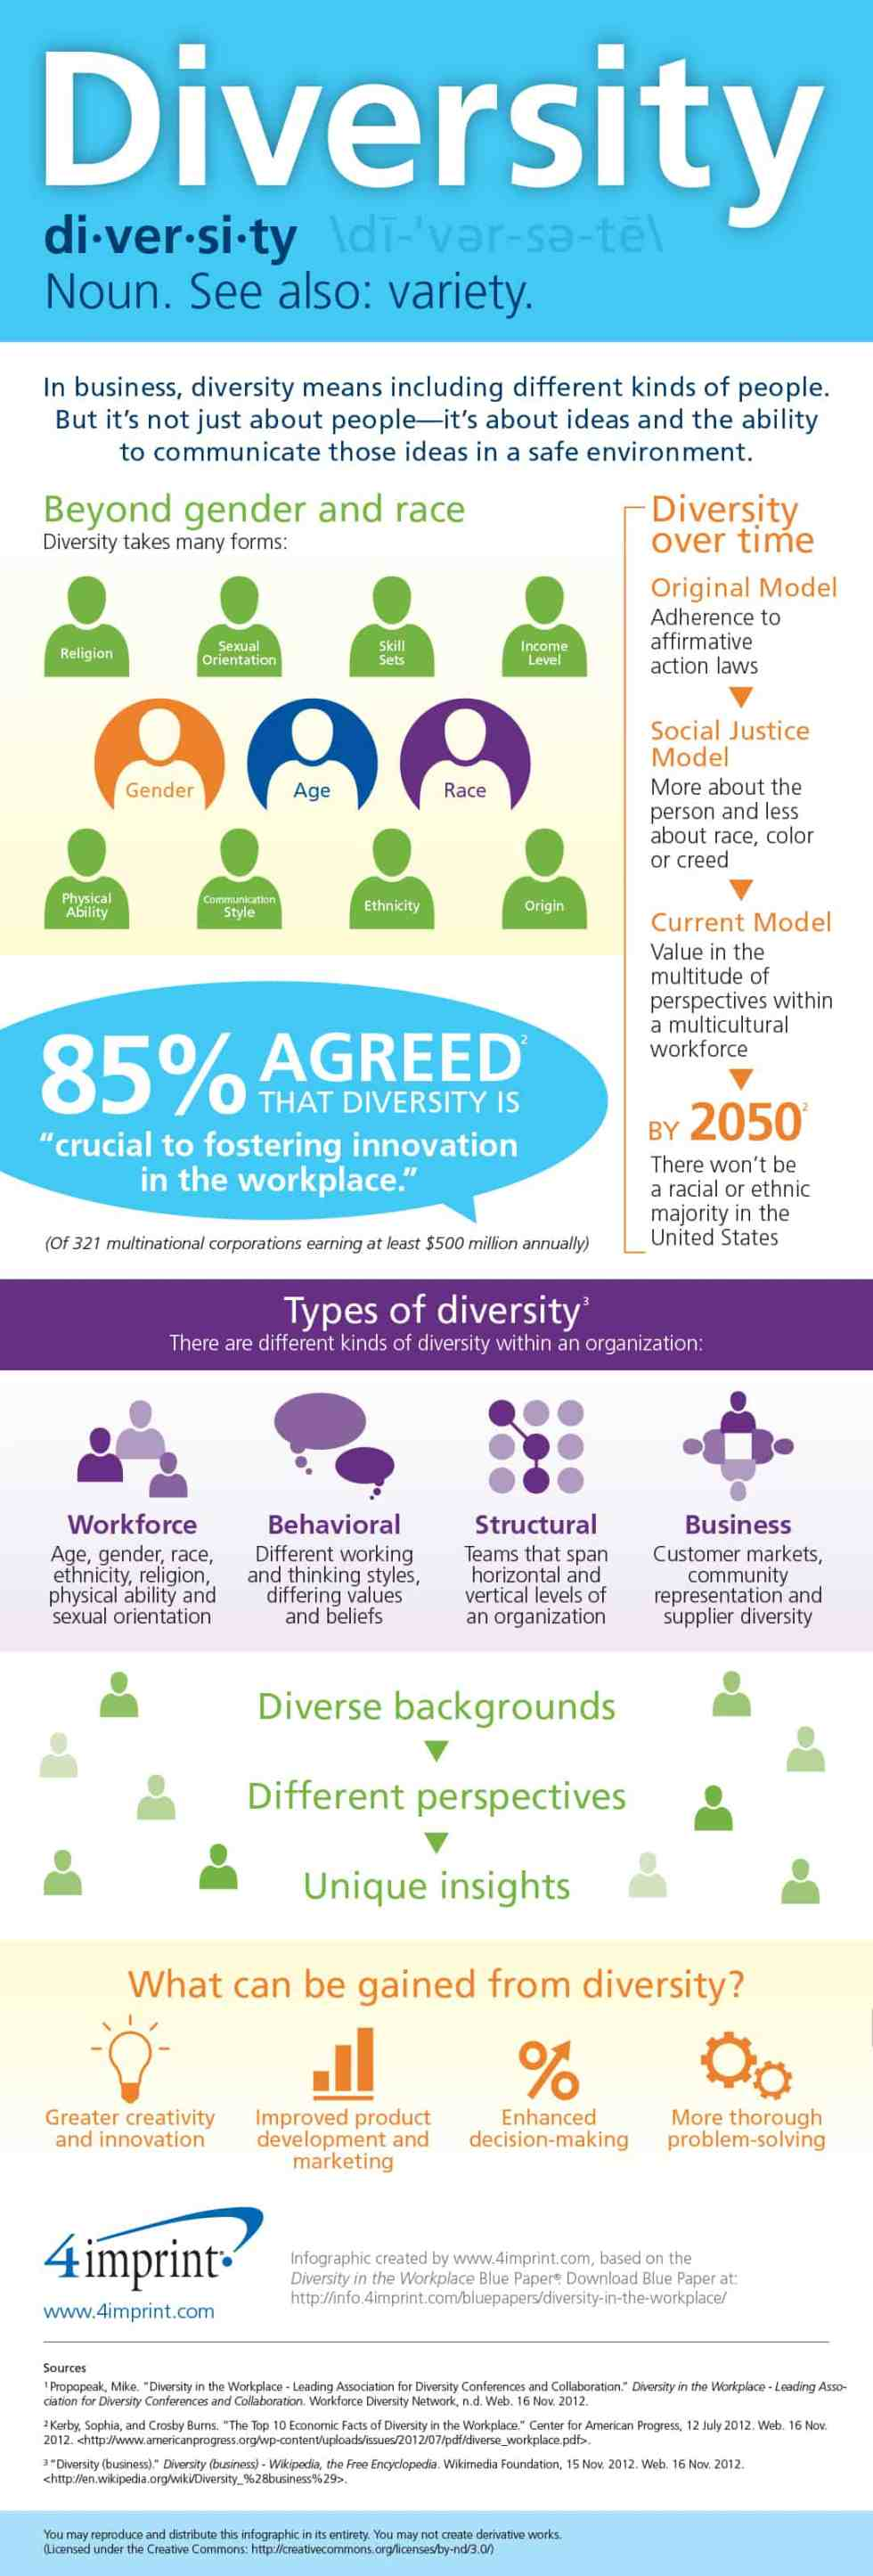 Diversity In The Workplace | 4imprint Learning Center